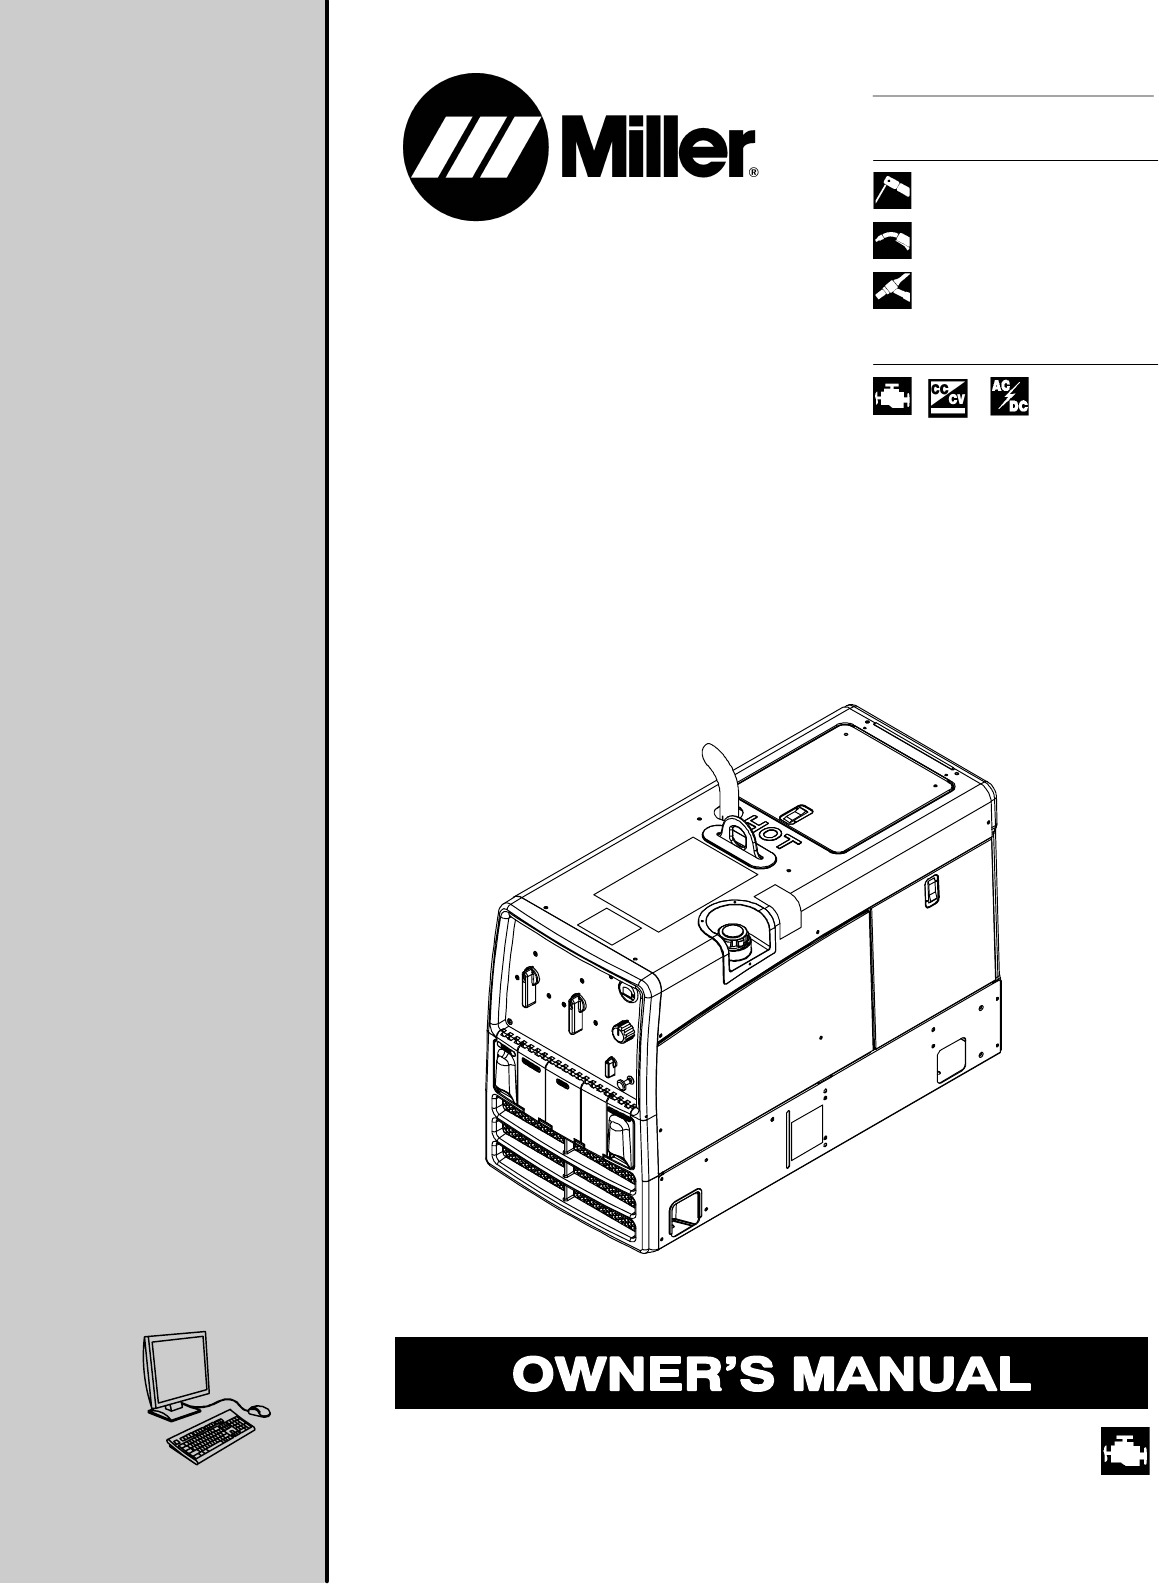 514878ea cc73 4d4b 88be 14aa039a7841 bg1 miller electric welding system bobcat 250 user guide miller bobcat 250 wiring diagram at gsmx.co